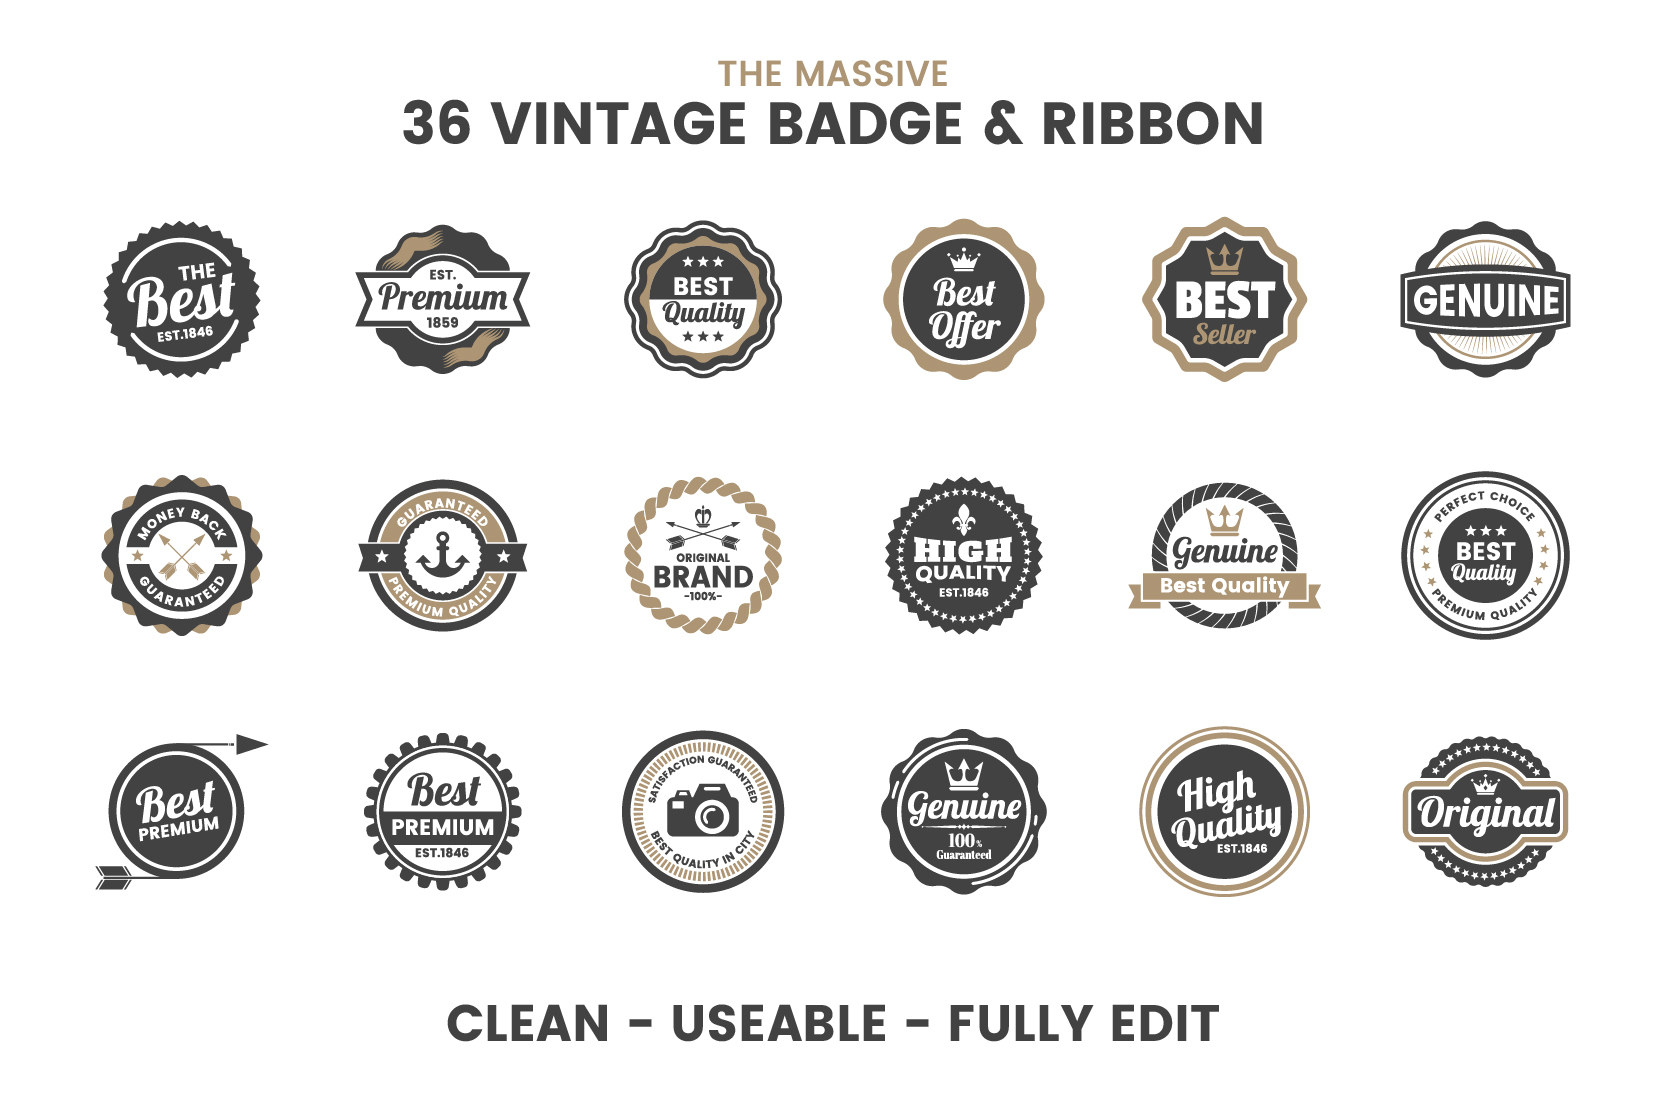 36 VINTAGE BADGE & RIBBON Vol.4 example image 6